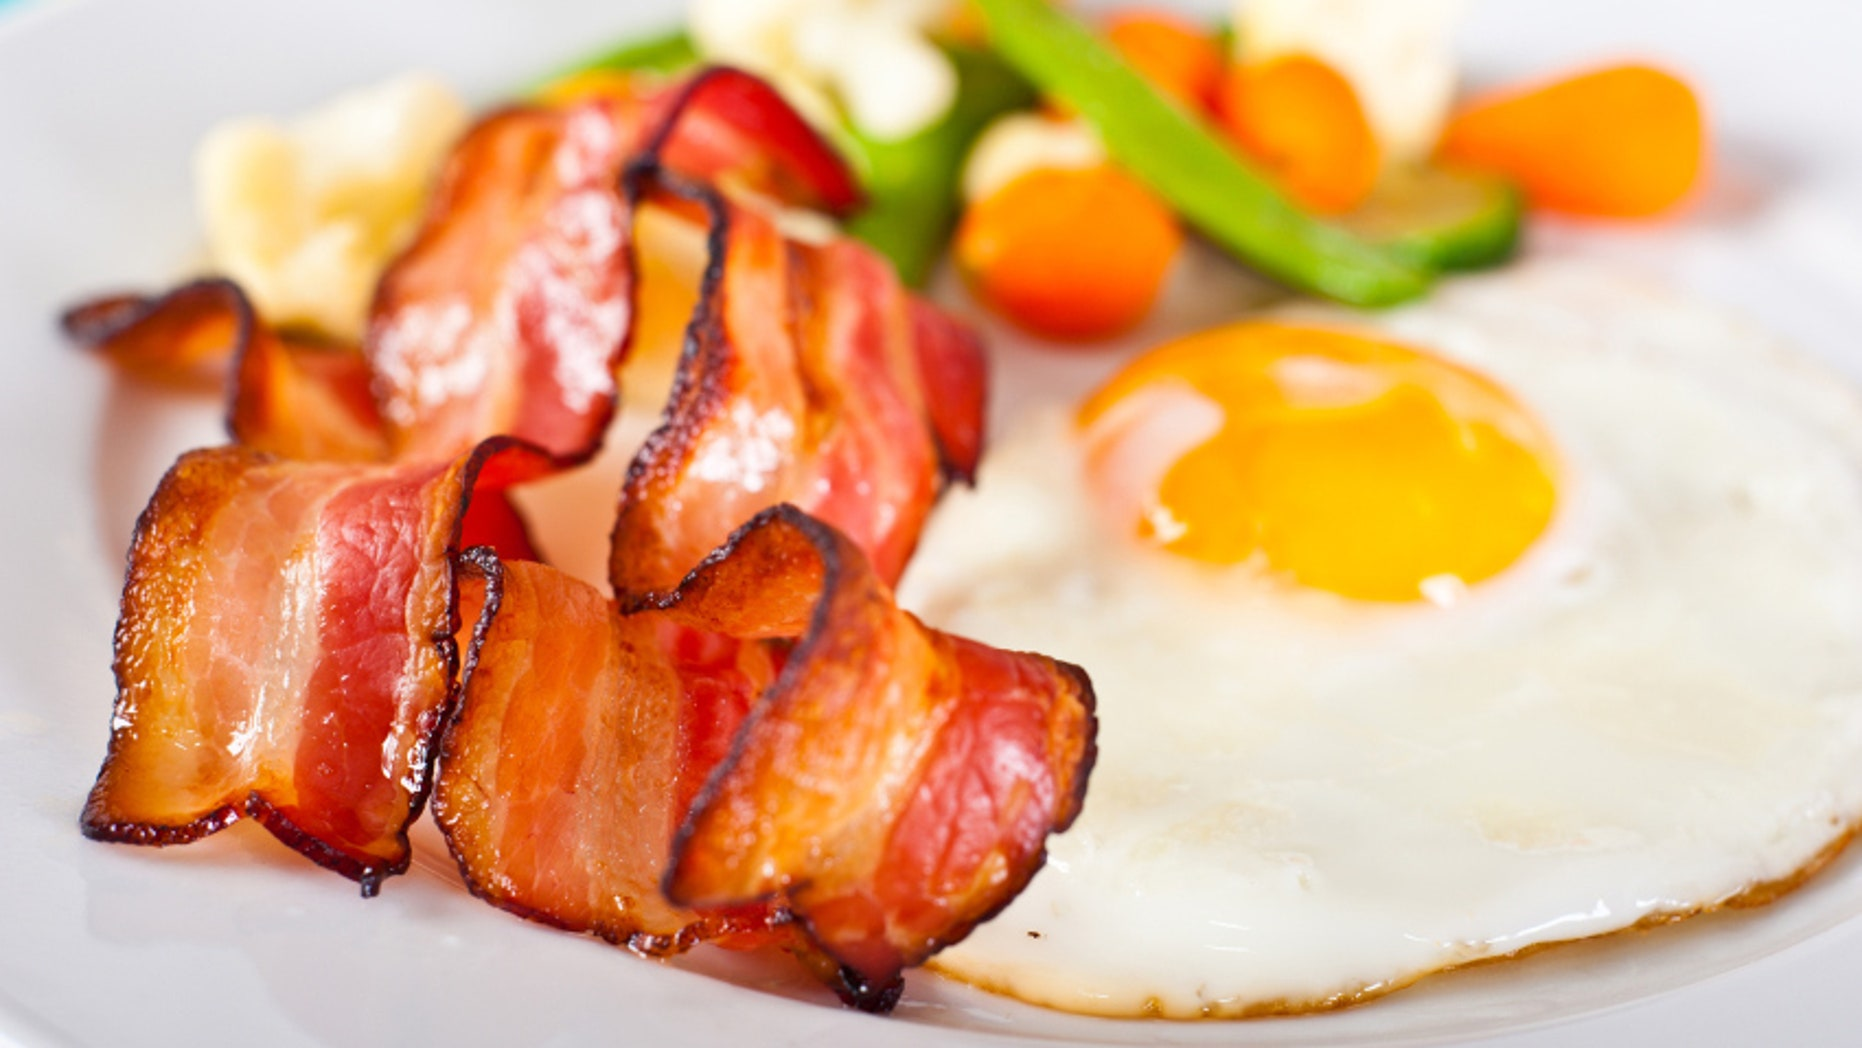 Close-up of fried egg with bacon and vegetables.